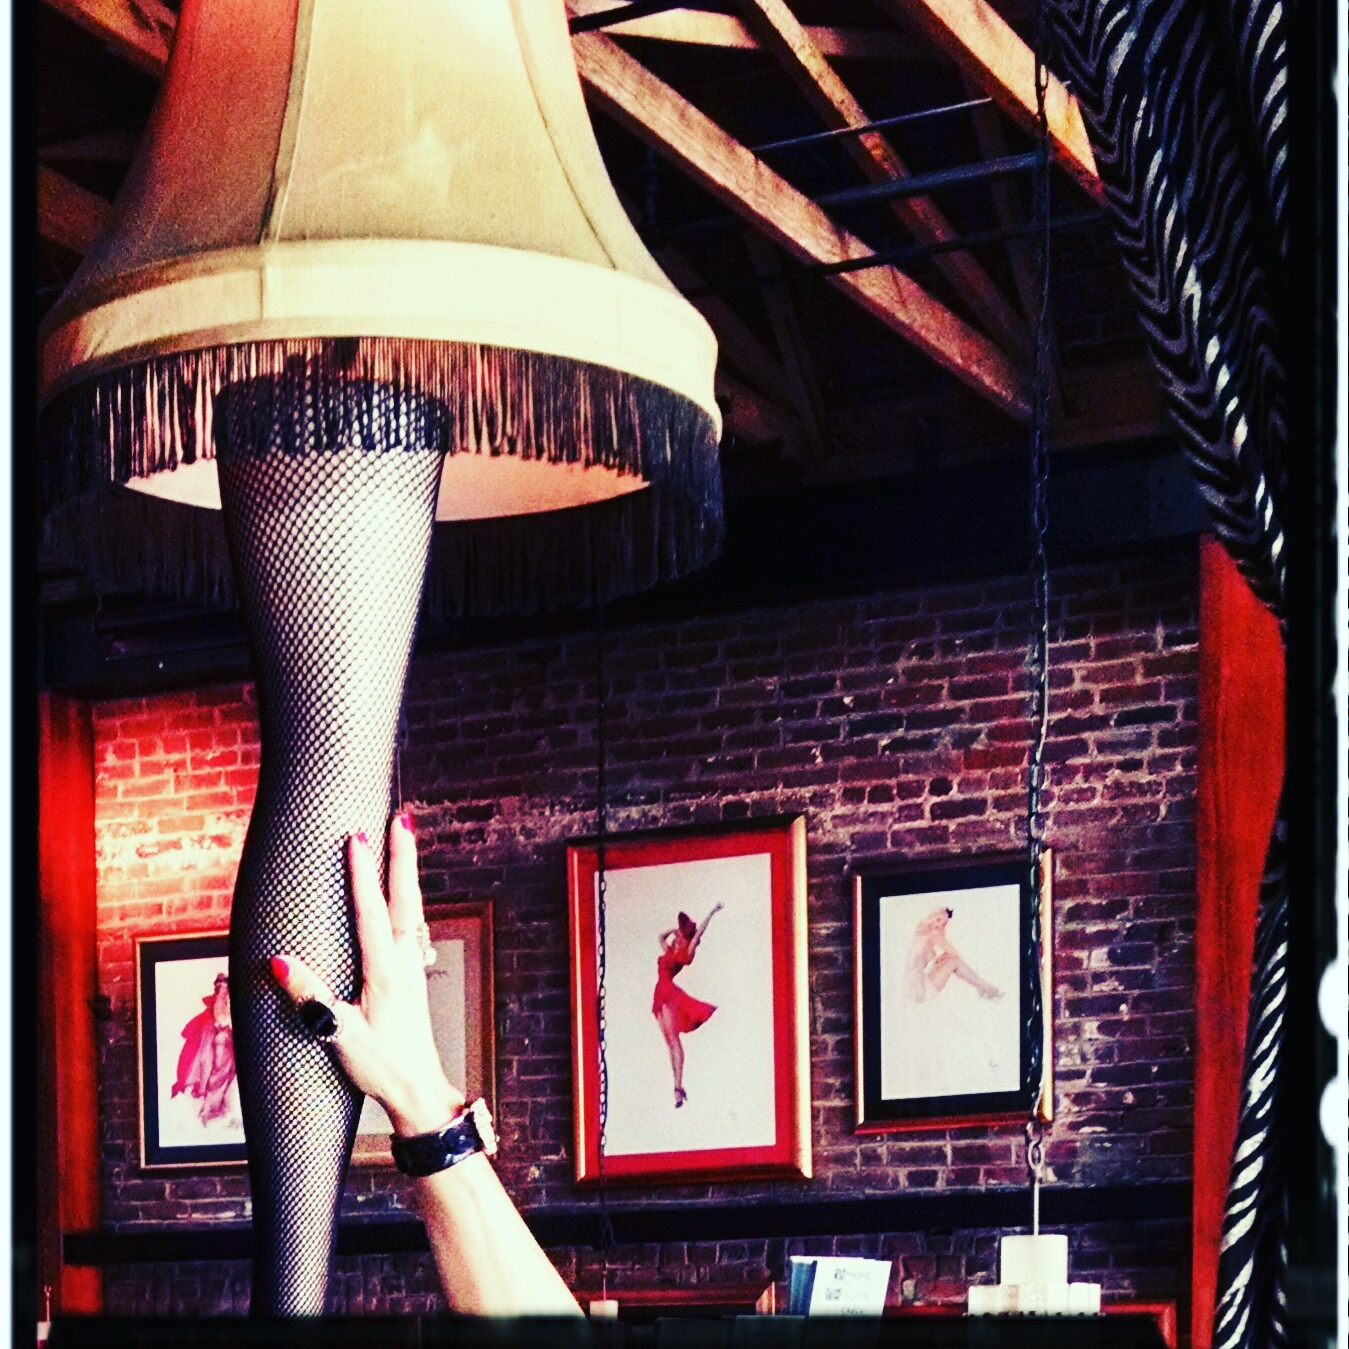 Author Jennifer Susannah Devore's homage to A Christmas Story, Gaslamp Strip Club, San Diego. Photo: JSDevore